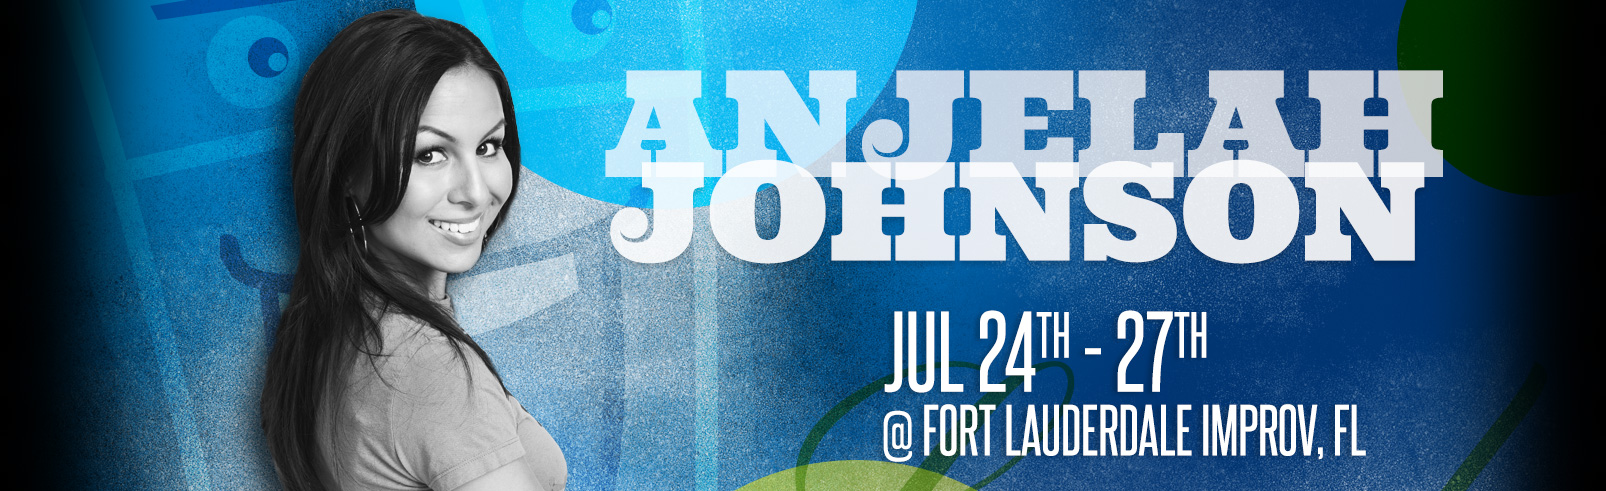 Anjelah Johnson @ Fort Lauderdale Improv